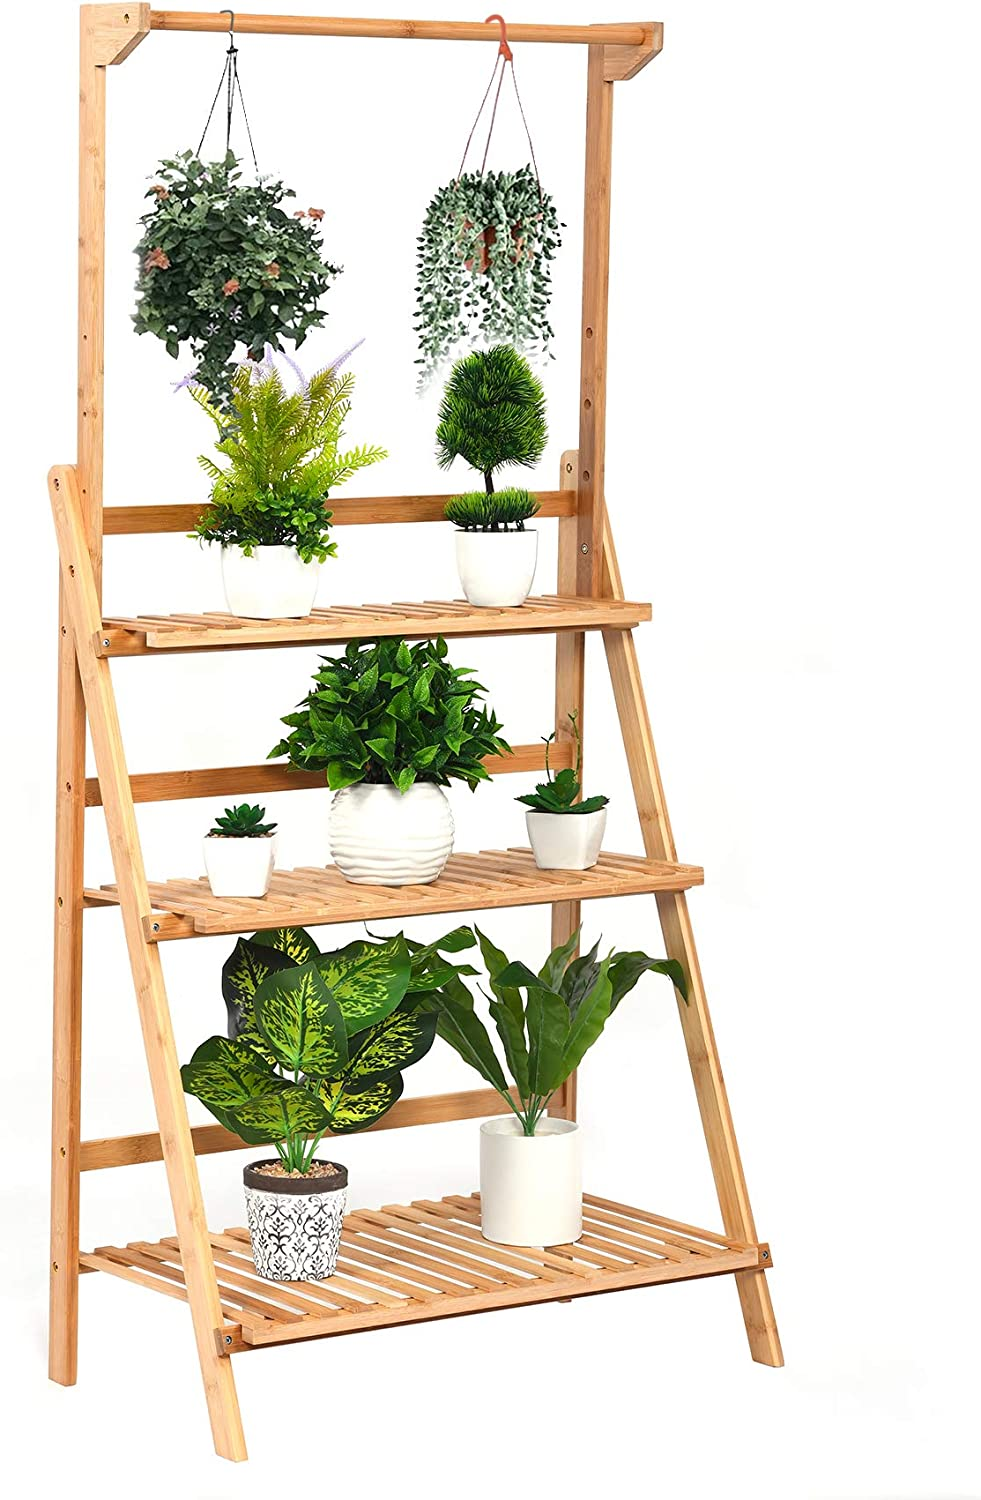 3 Tier Bamboo Hanging Plant Stand, Foldable Planter Display Rack, Flower Pot Organizer Storage Shelves for Indoor Outdoor Home Patio Lawn Garden Balcony